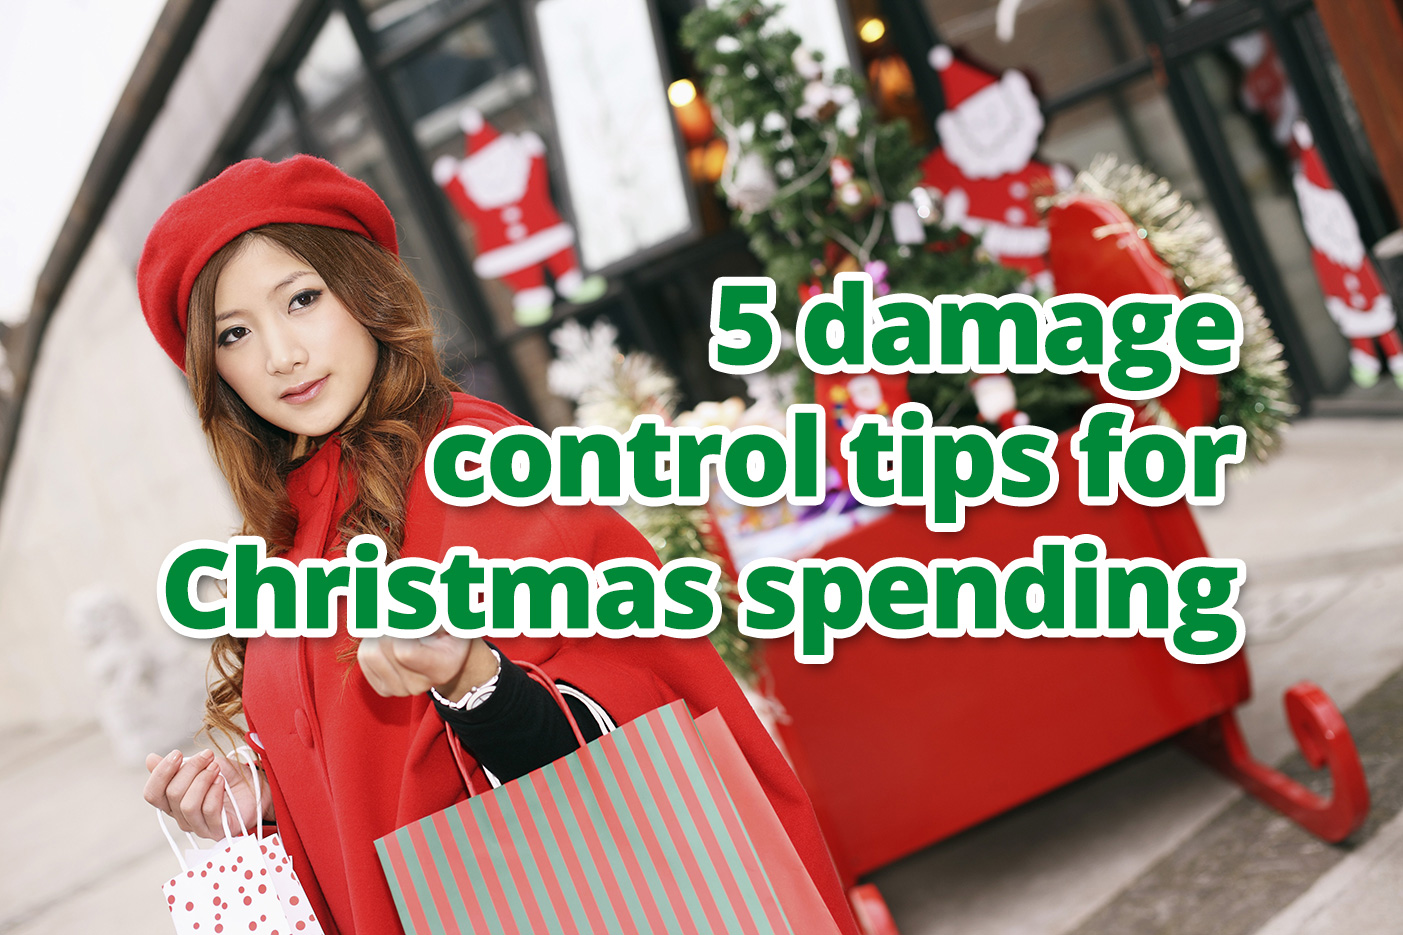 5 damage control tips for Christmas spending